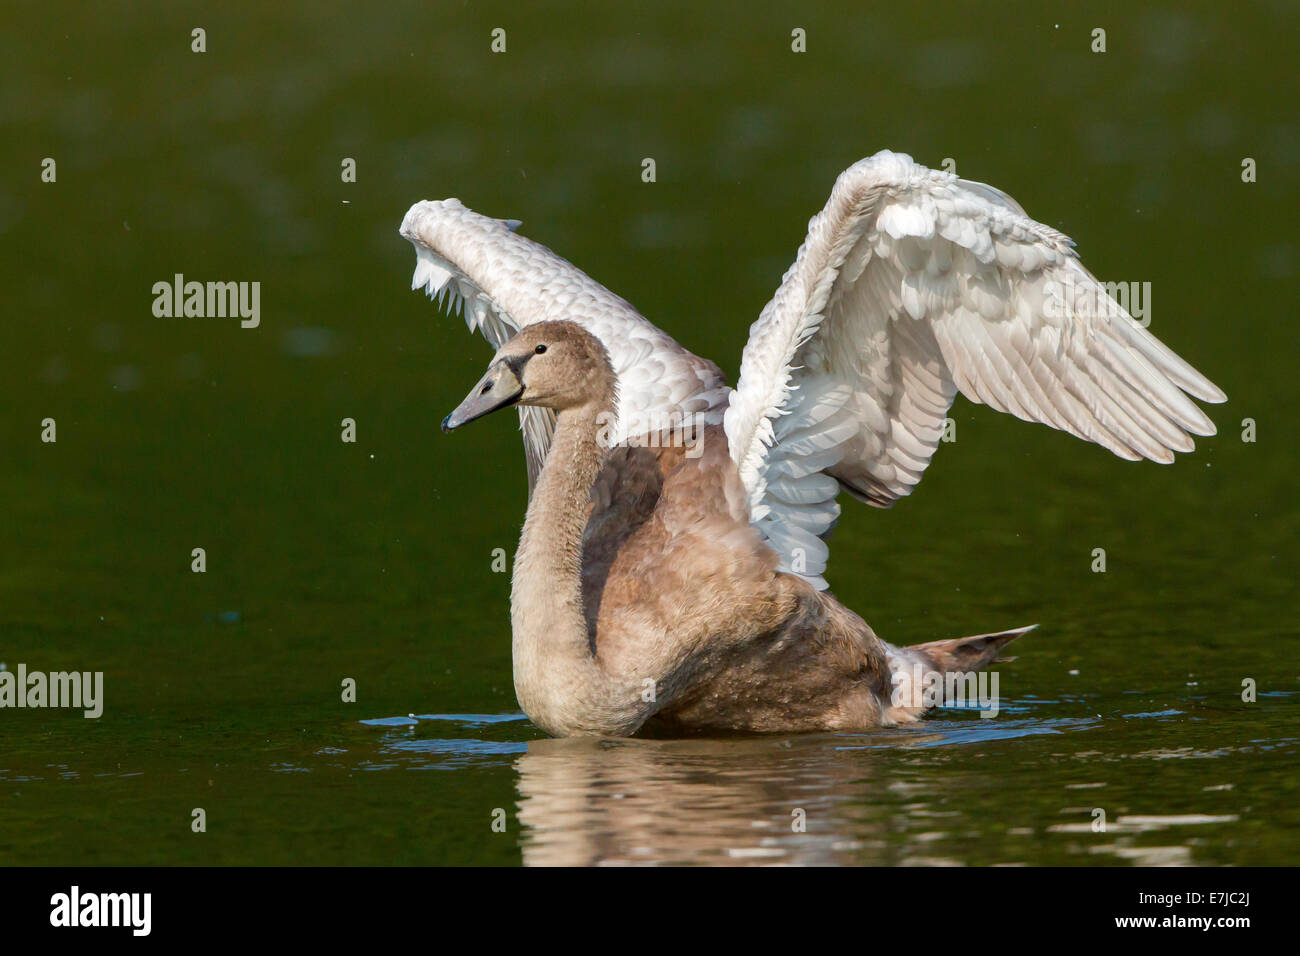 Young Mute Swan (Cygnus olor) spreading wings - Stock Image